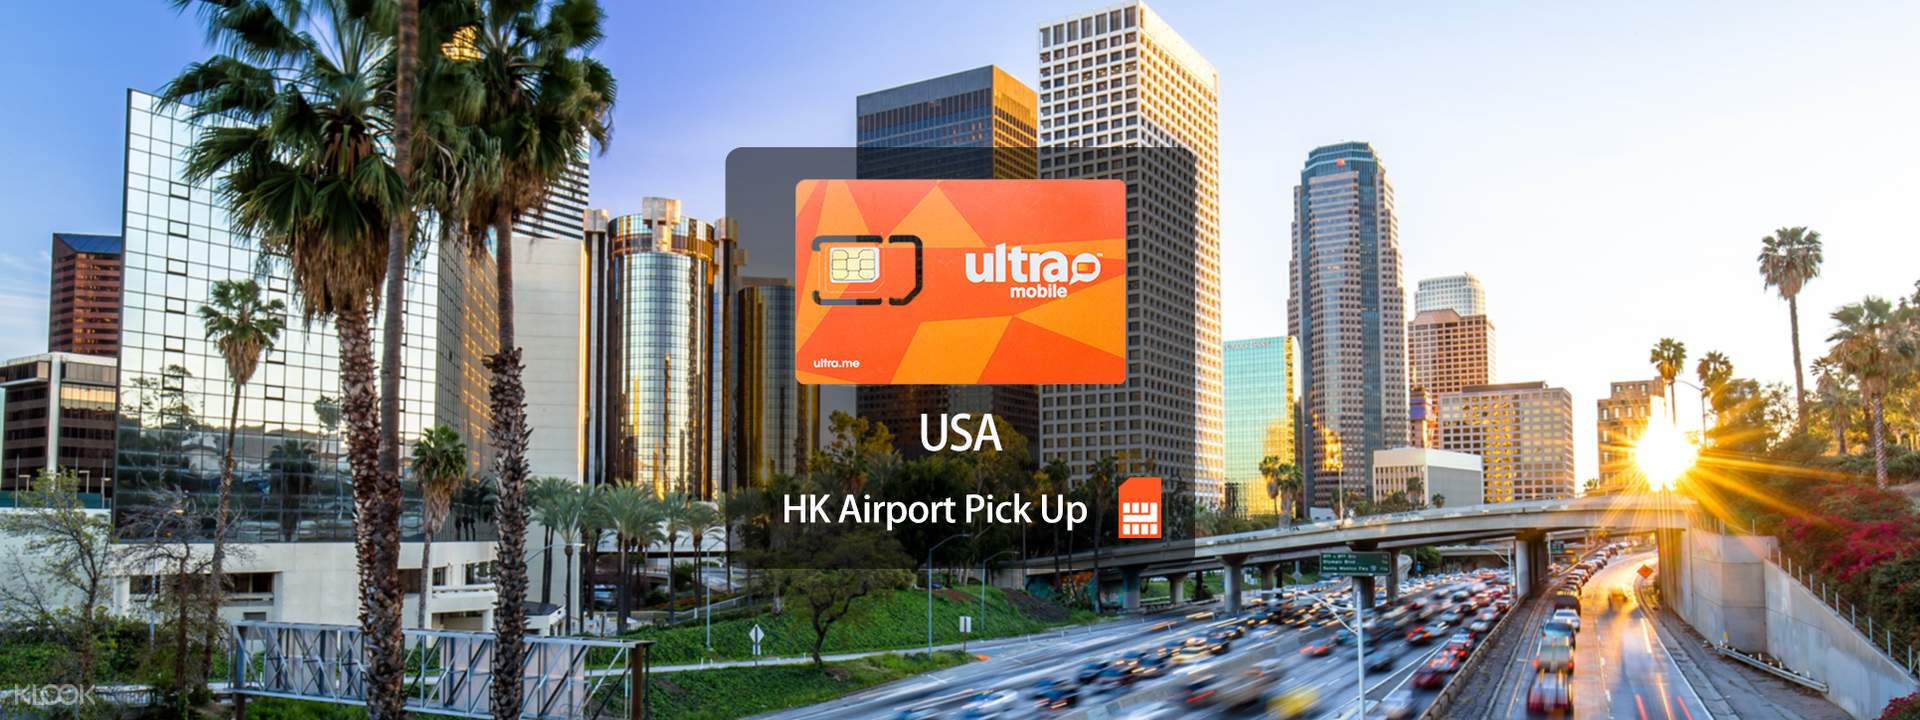 4G SIM Card (HK Airport Pick Up) for USA from Ultra - Klook